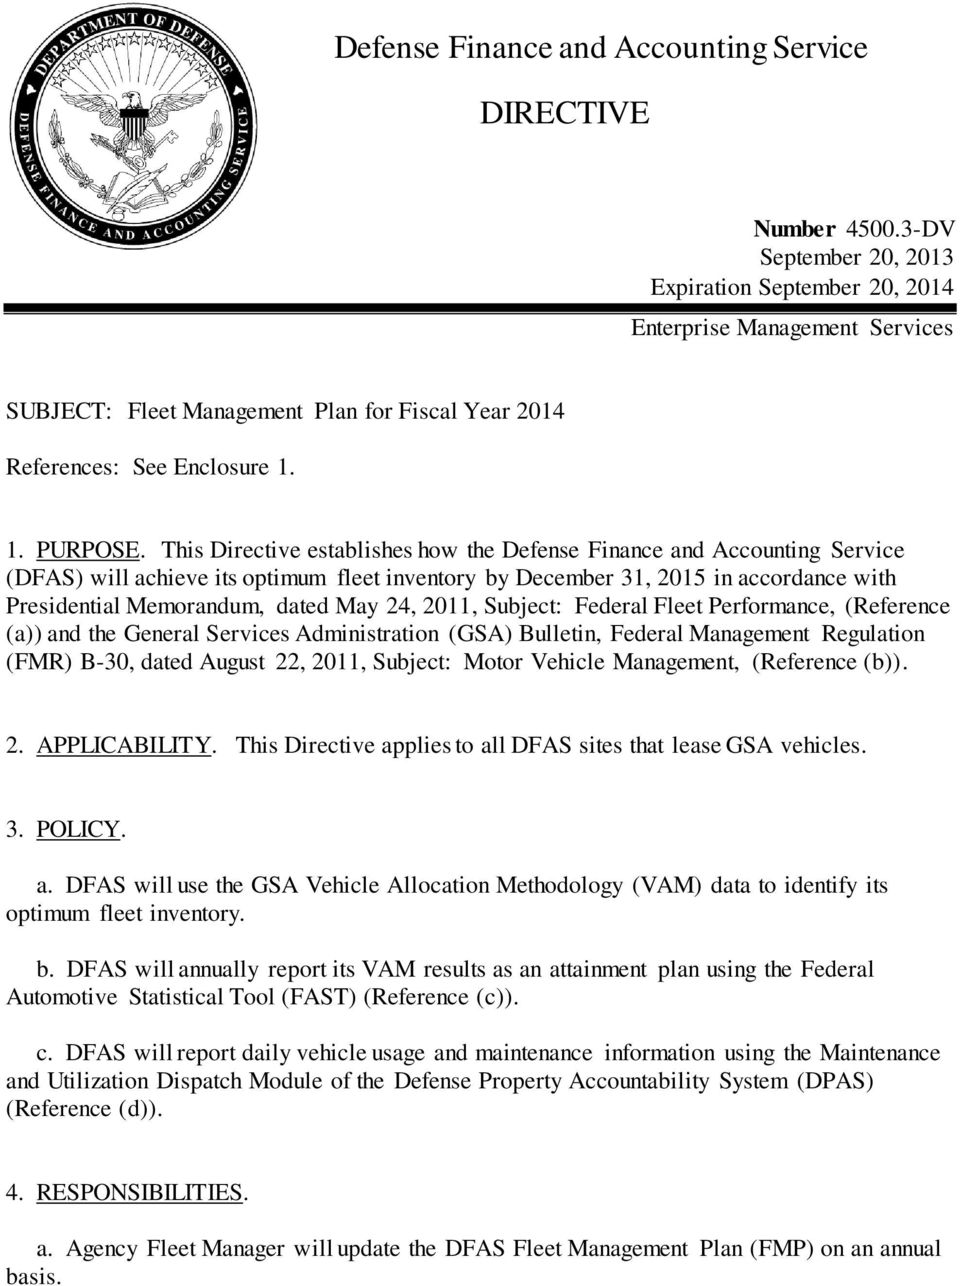 This Directive establishes how the Defense Finance and Accounting Service (DFAS) will achieve its optimum fleet inventory by December 31, 2015 in accordance with Presidential Memorandum, dated May